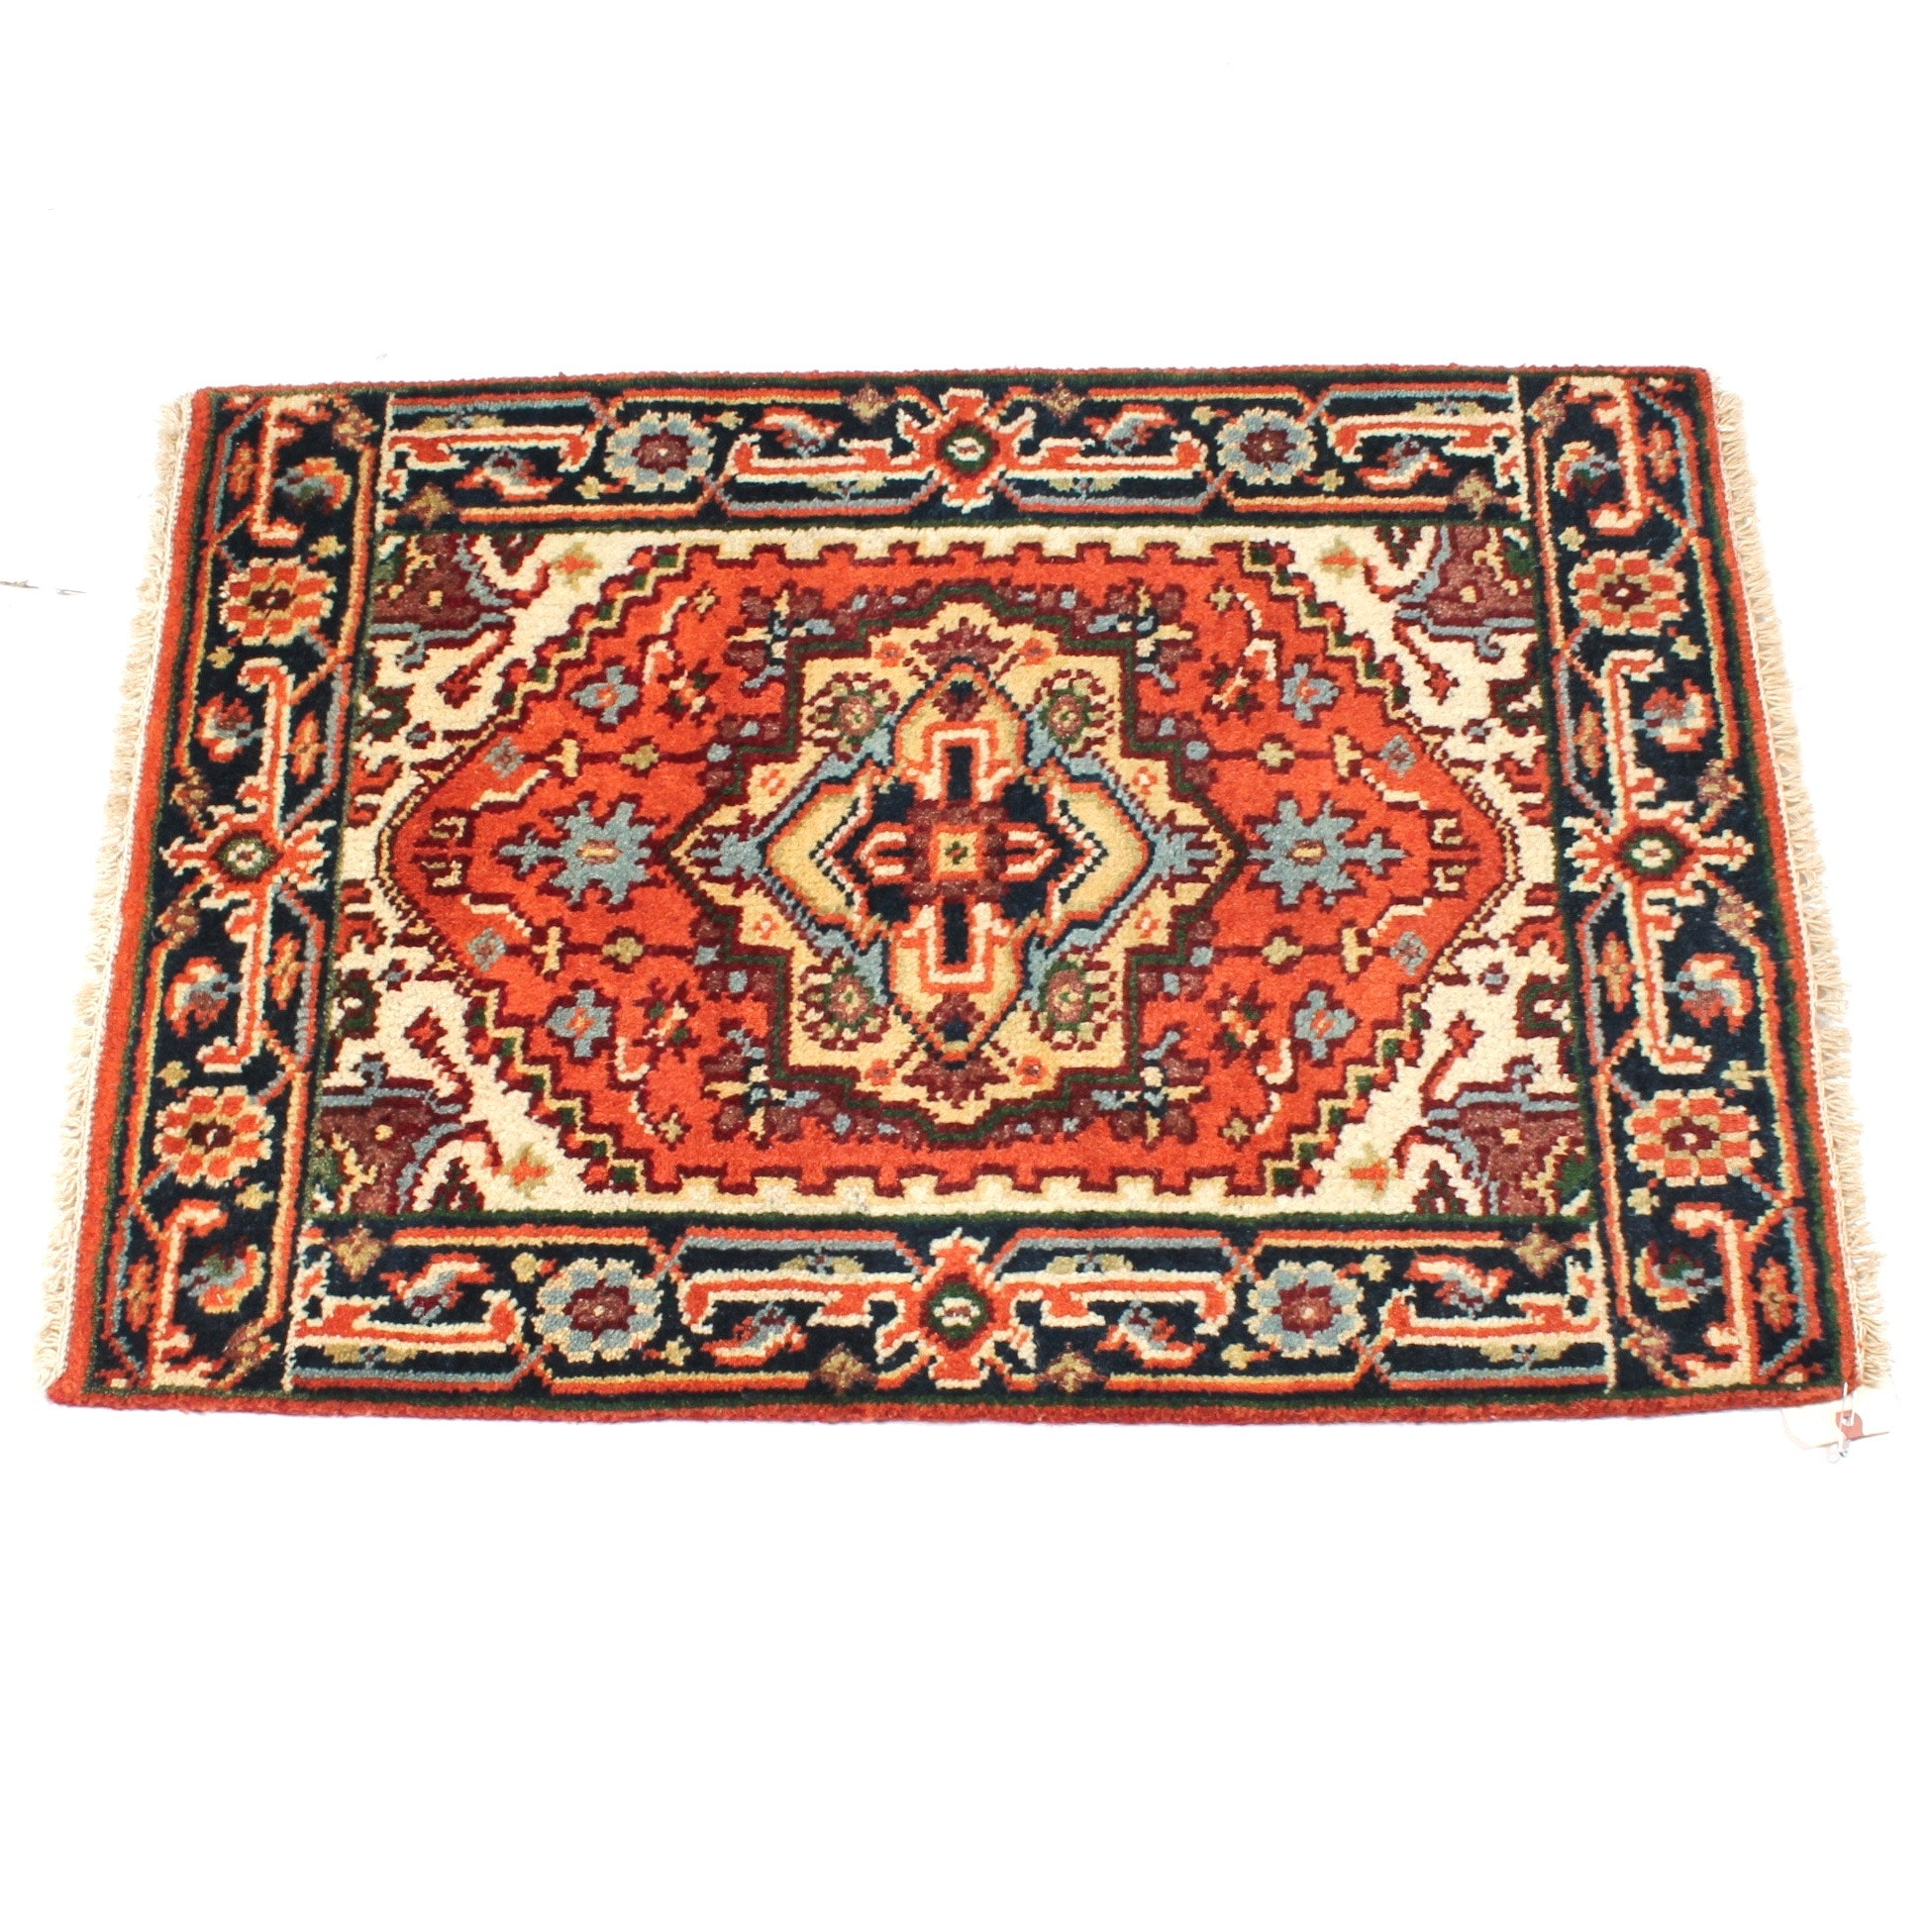 2' x 3' Hand-Knotted Indo-Persian Bakhshayesh Heriz Accent Rug